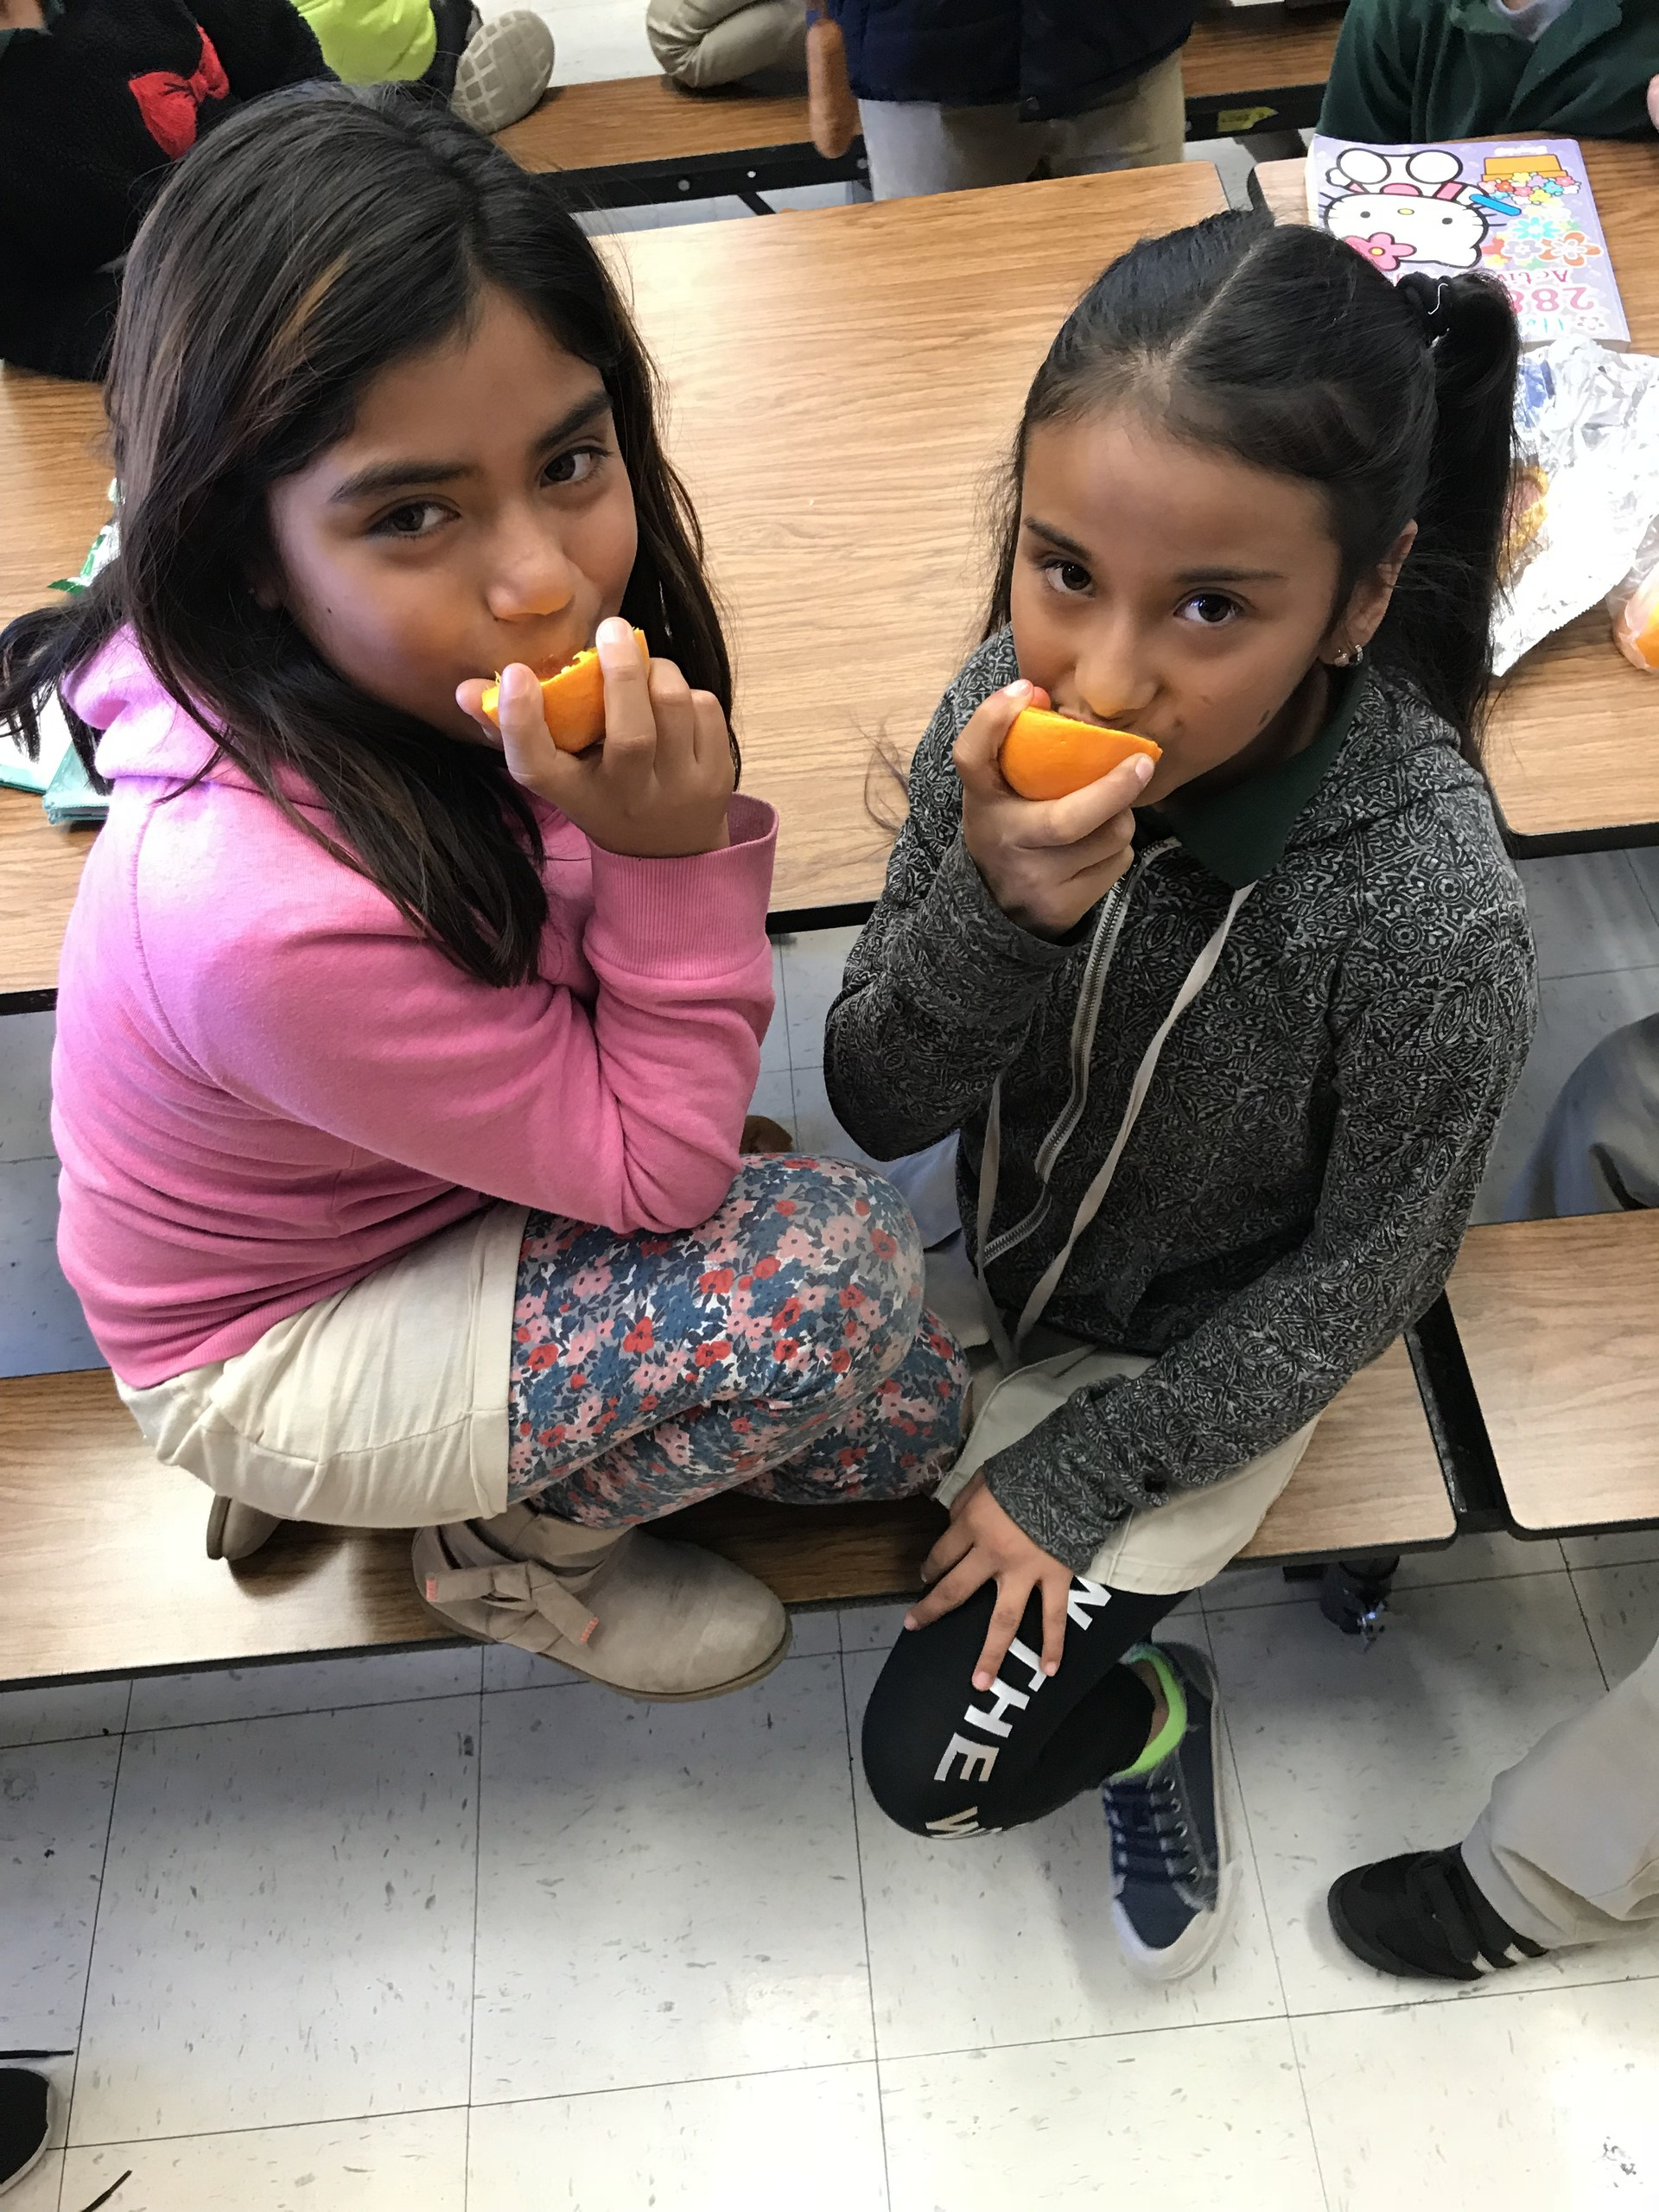 students eating oranges